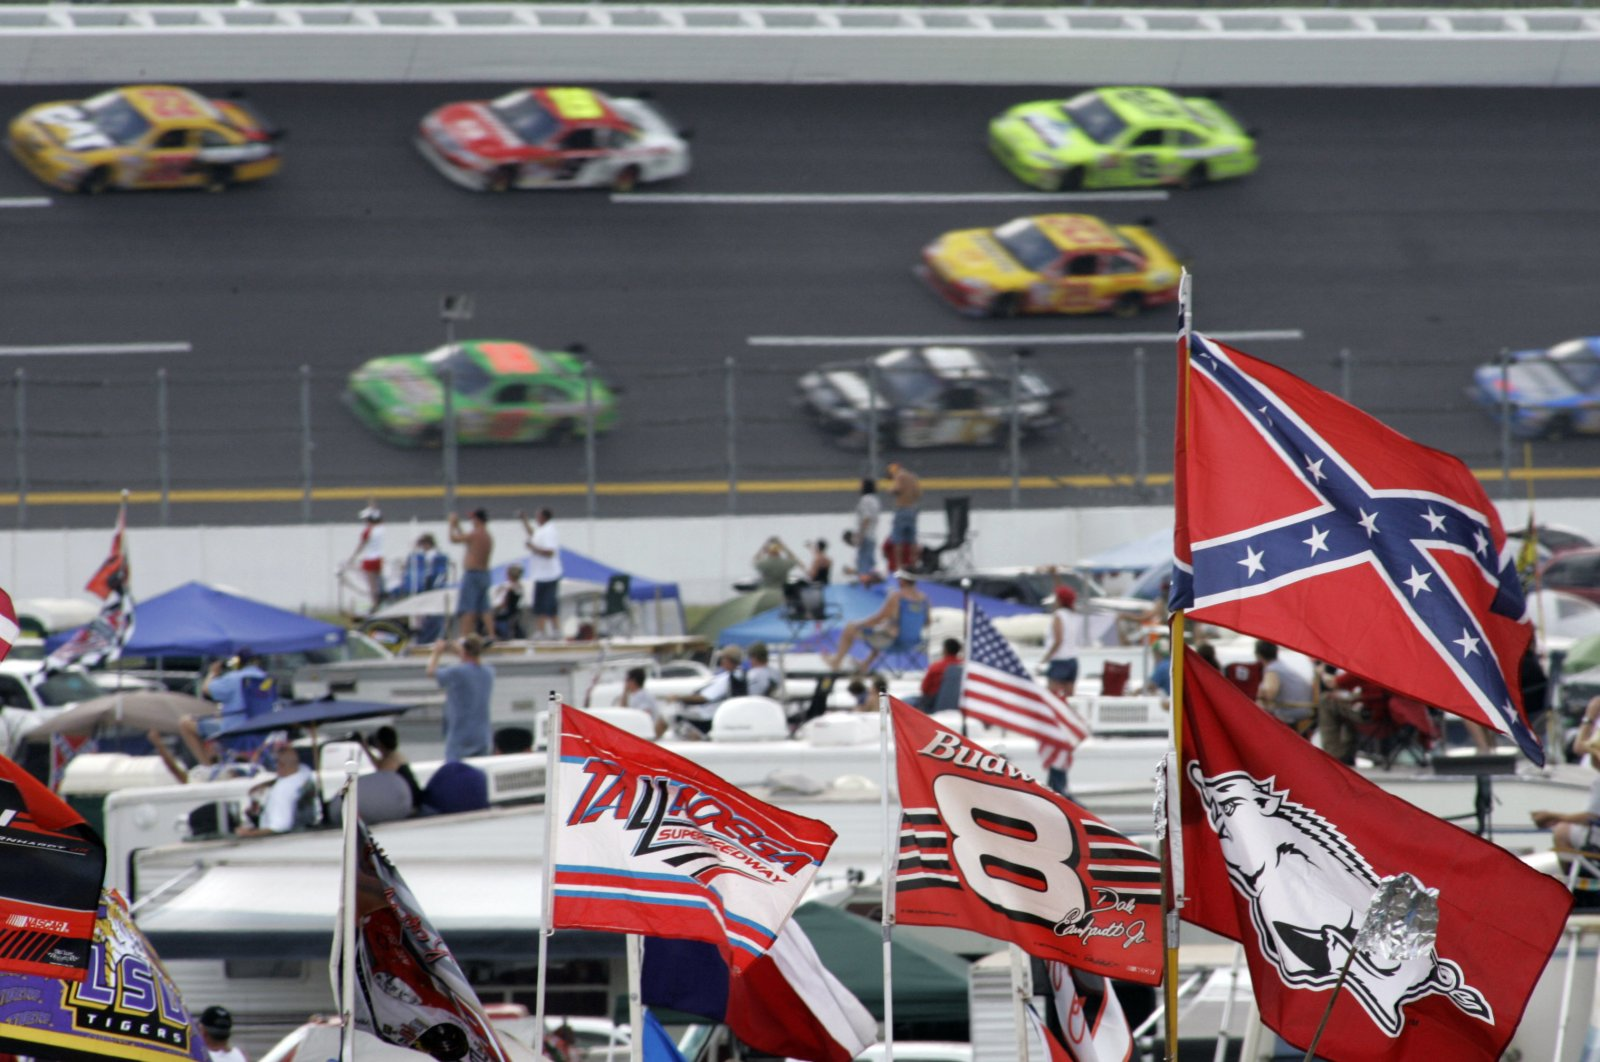 A Confederate flag flies in the infield as cars come out of Turn 1 during a NASCAR auto race at Talladega Superspeedway in Talladega, Ala., Oct. 7, 2007. (AP File Photo)